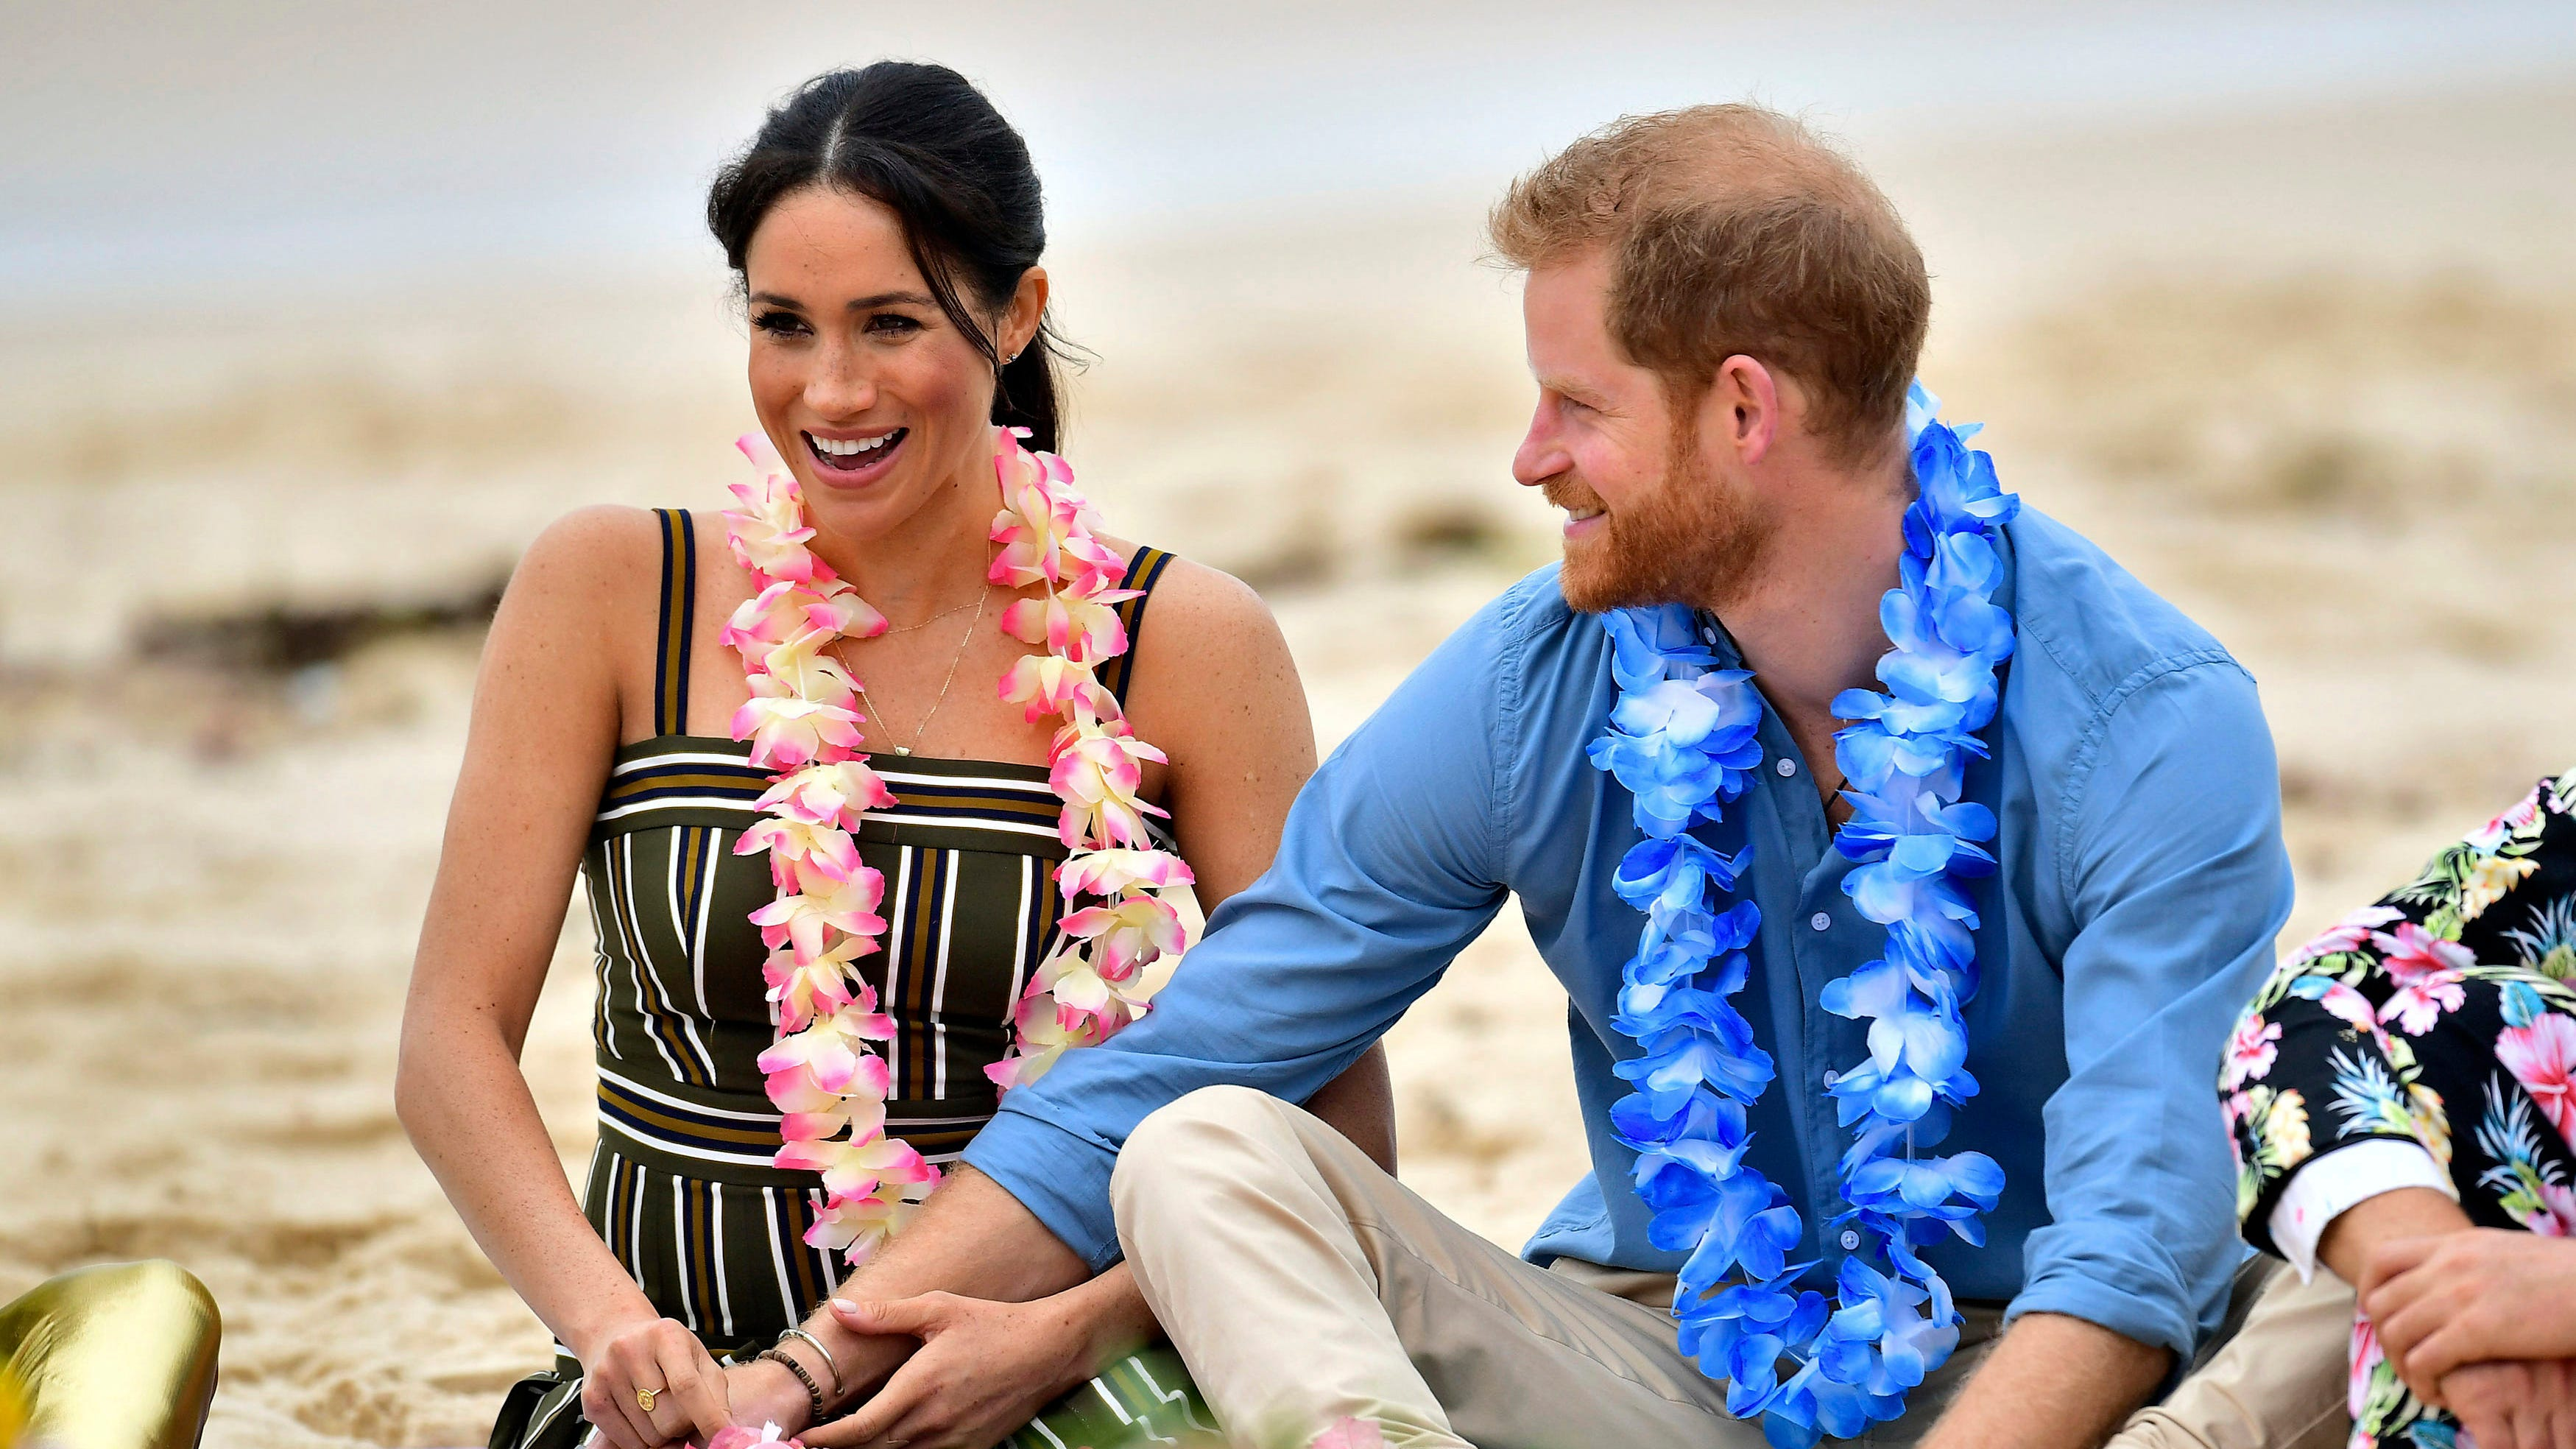 Britain's Prince Harry and Meghan, Duchess of Sussex meet a local surfing community group, known as OneWave, raising awareness for mental health and wellbeing in a fun and engaging way at Bondi Beach Sydney, Australia, Friday, Oct. 19, 2018. Prince Harry and his wife Meghan are on day four of their 16-day tour of Australia and the South Pacific. (Dominic Lipinski/Pool via AP) ORG XMIT: XMB107